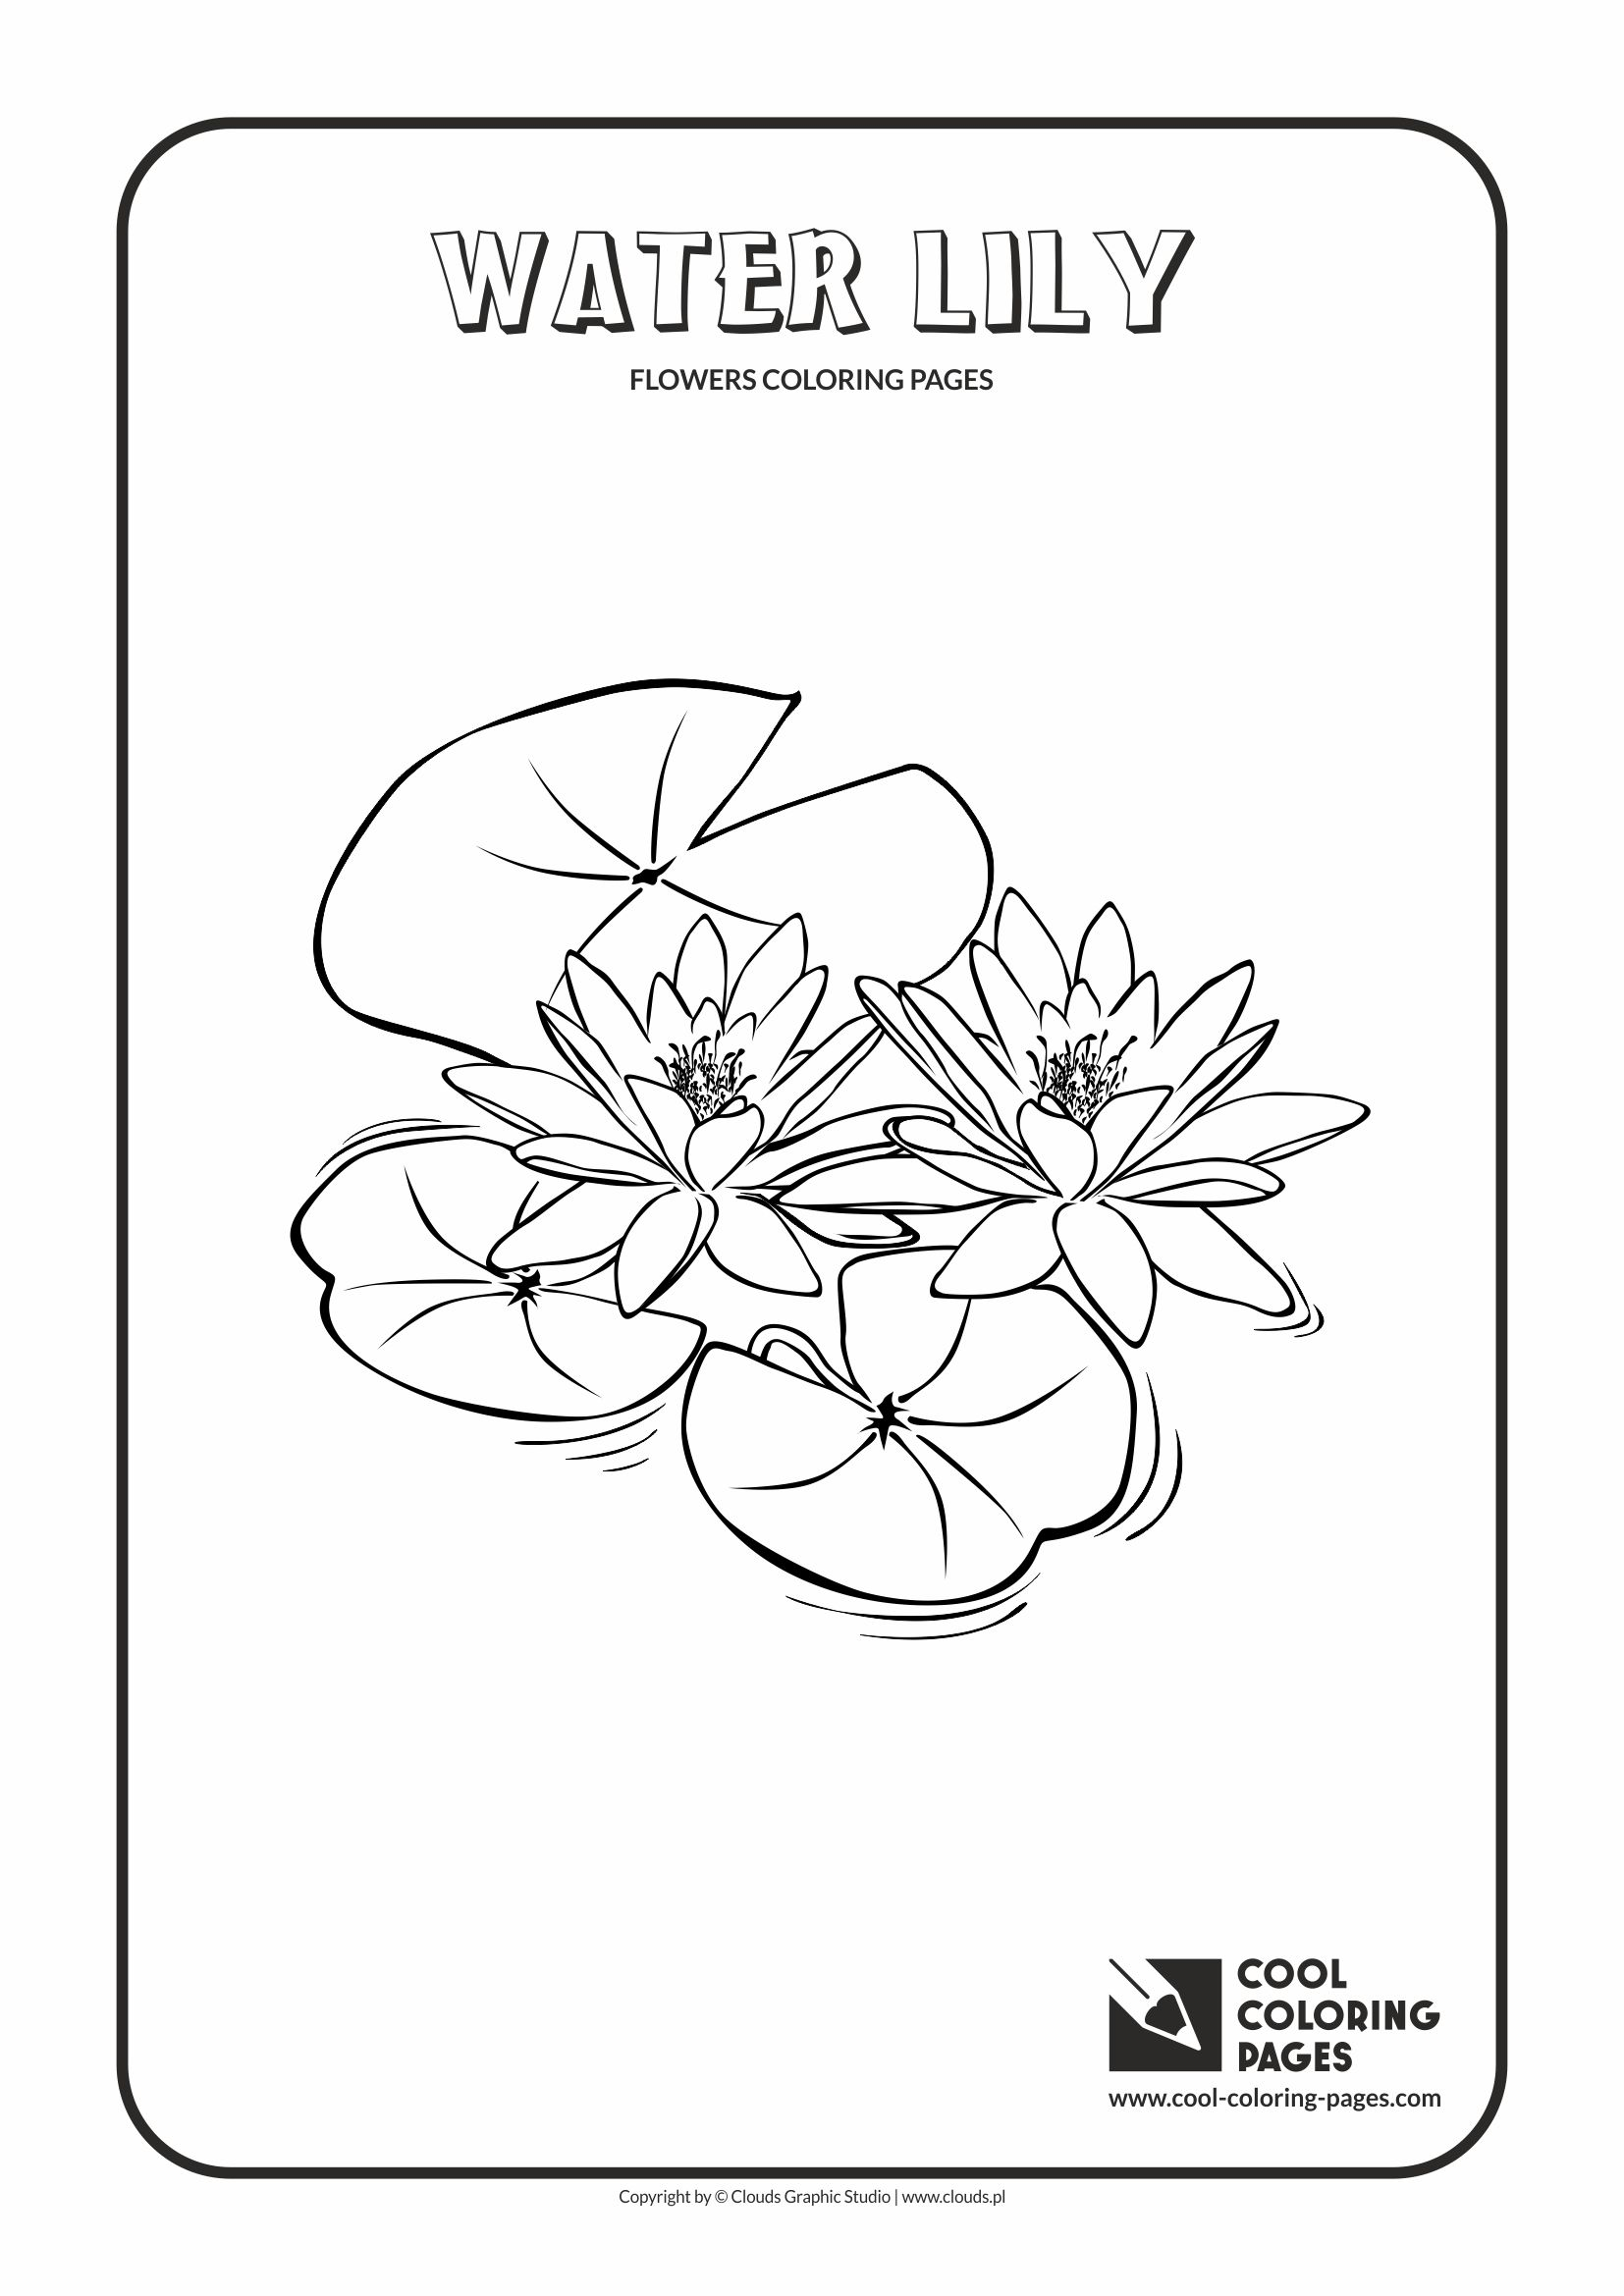 Cool Coloring Pages - Plants / Water lily / Coloring page with water lily